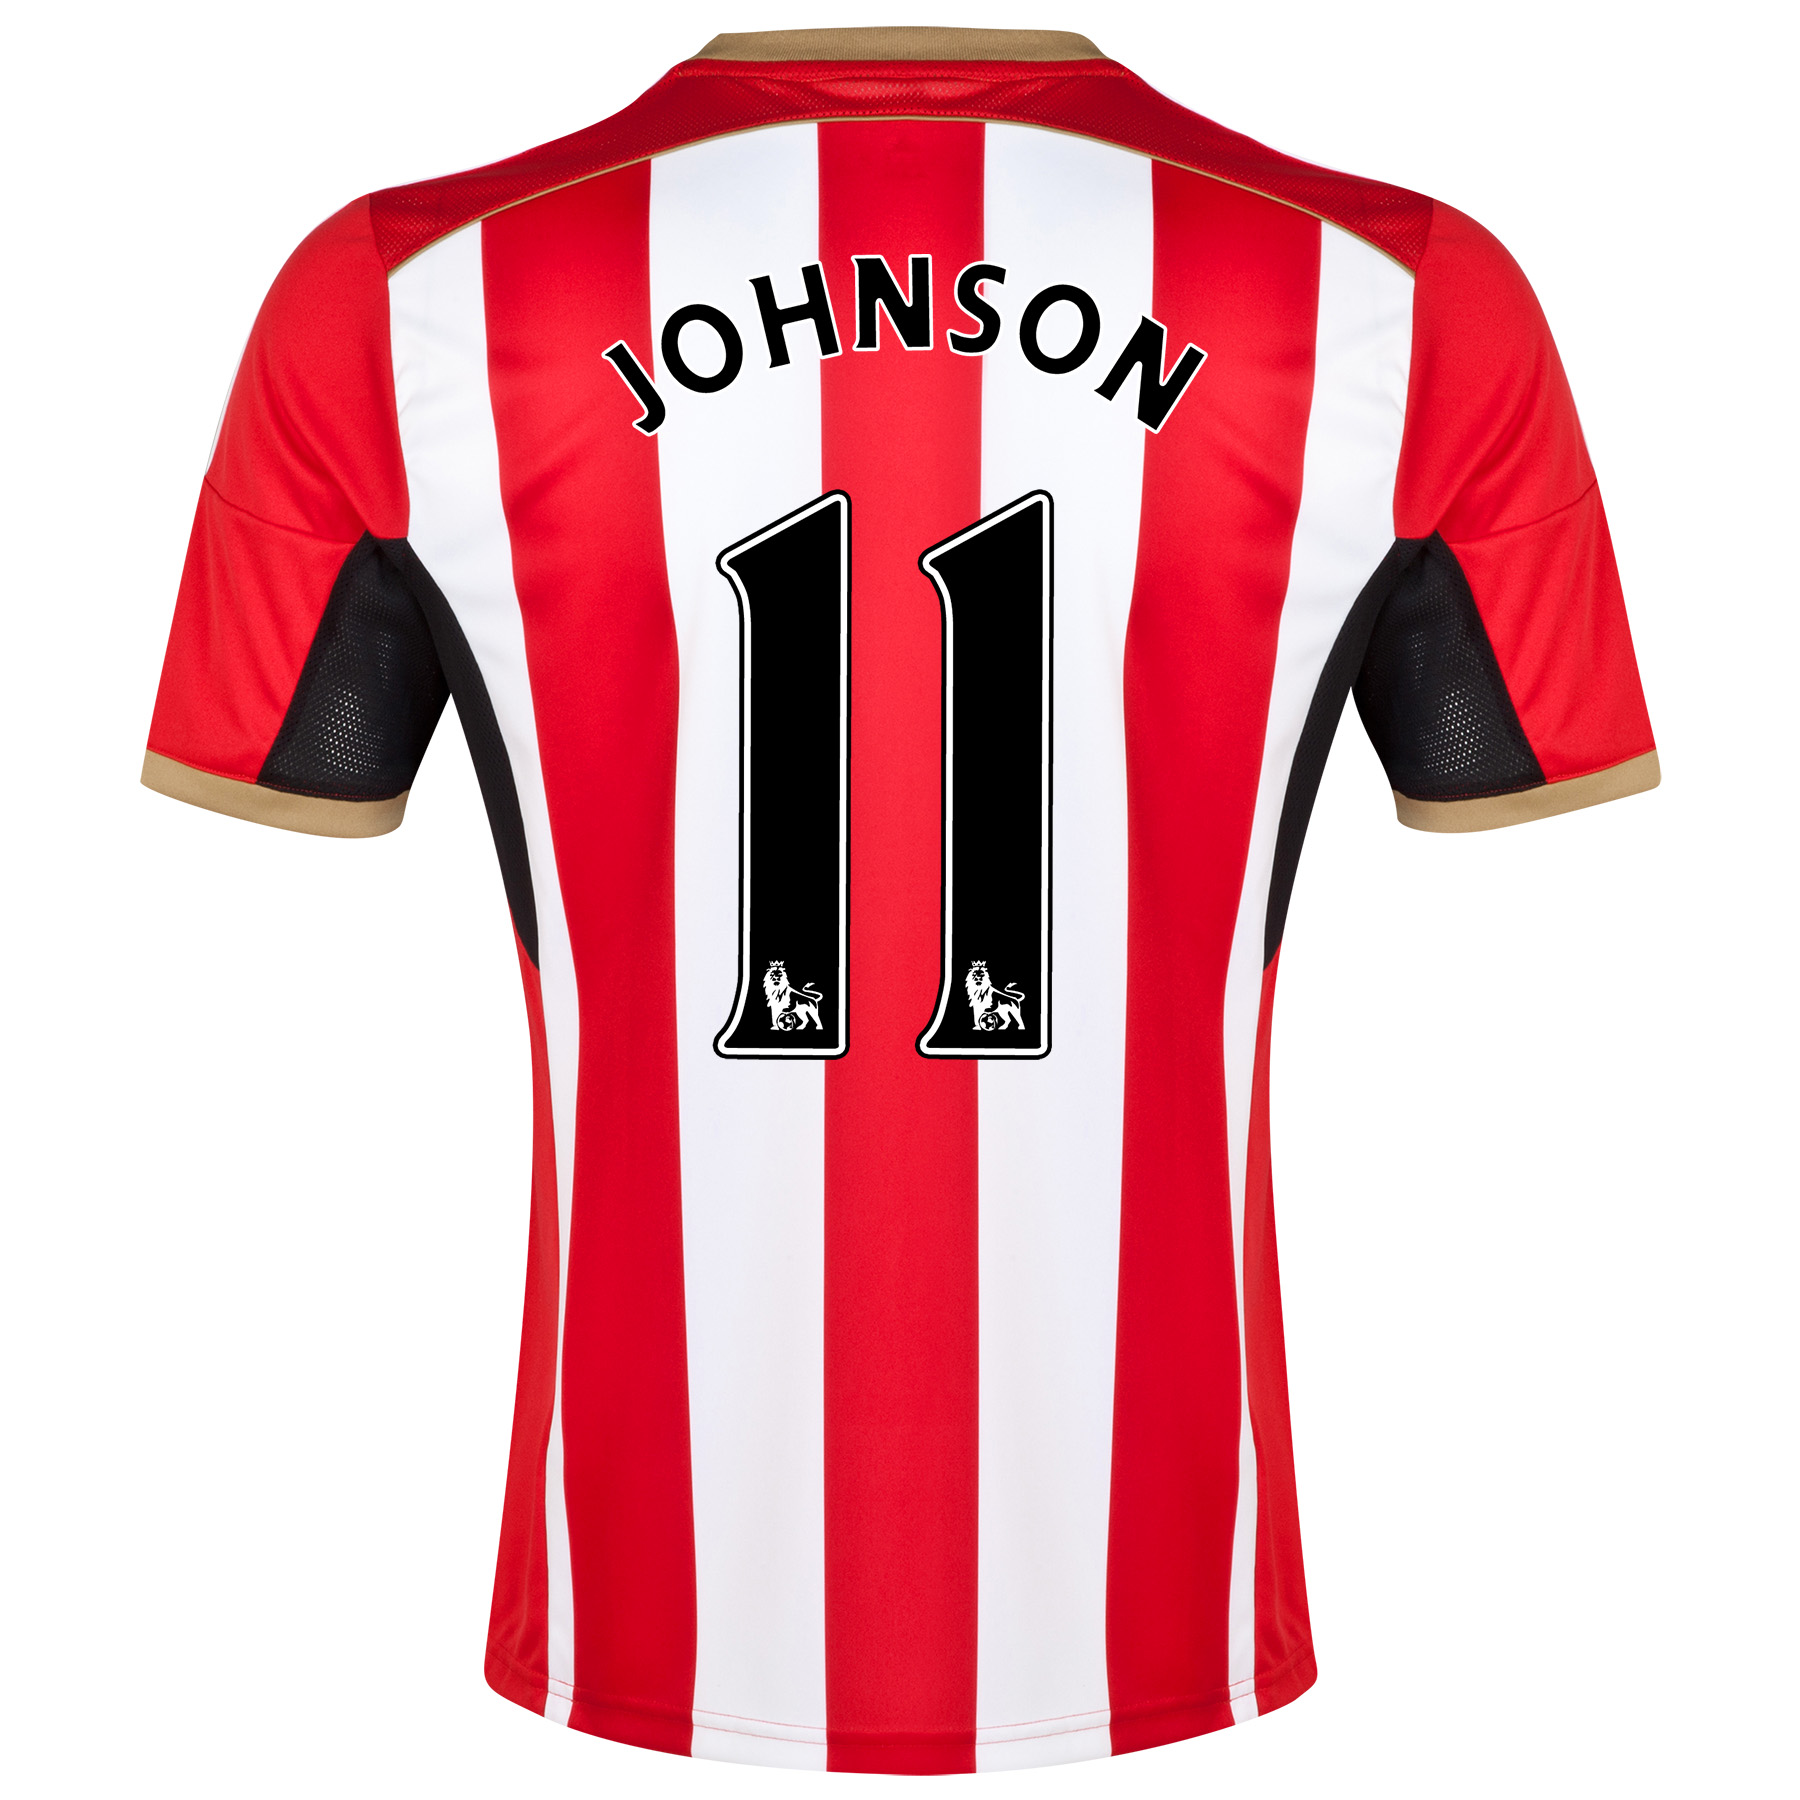 Sunderland Home Shirt 2014/15 - Junior Red with Johnson 11 printing